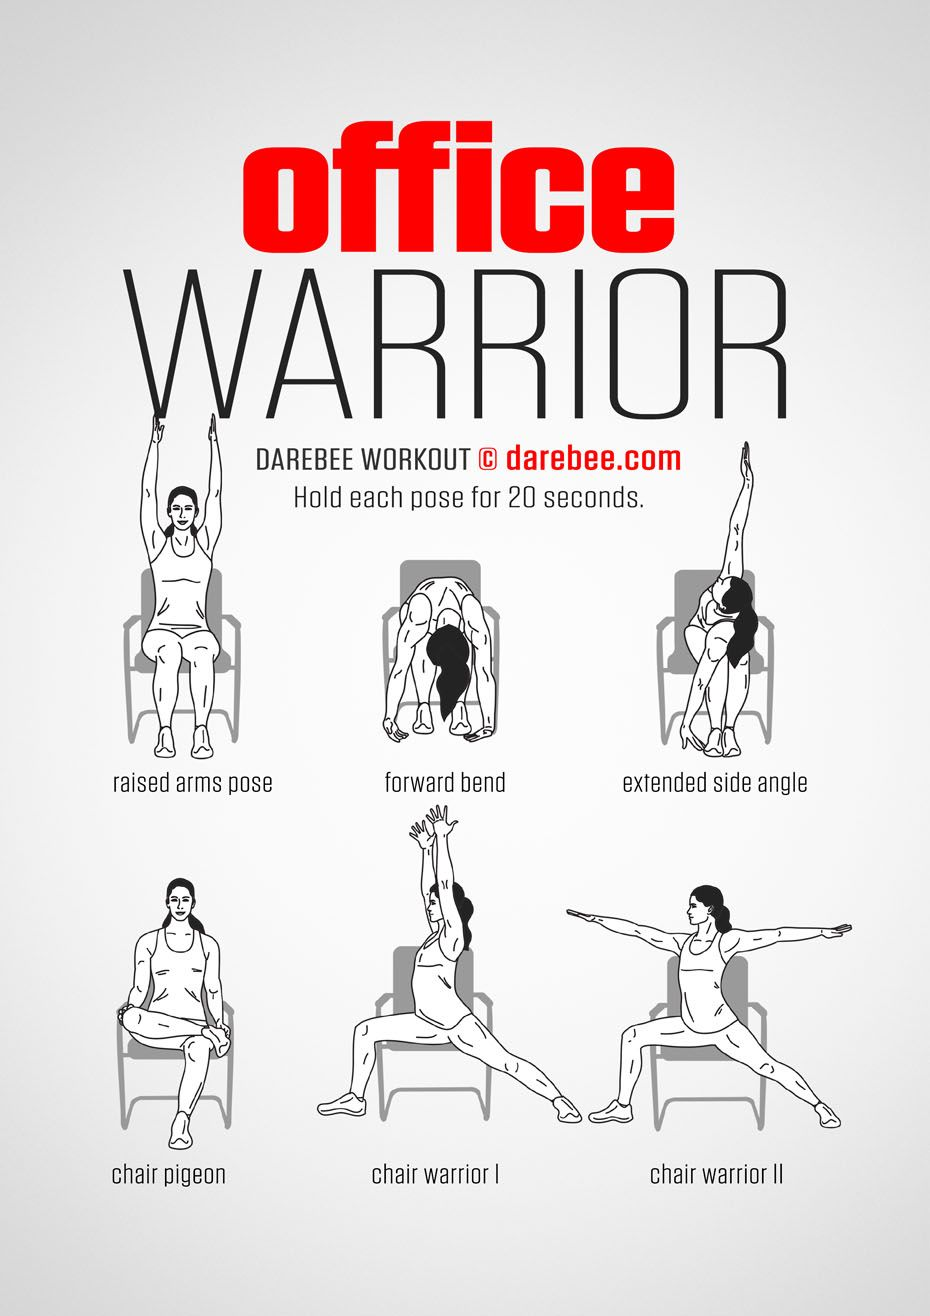 Office Warrior  Workout   Posted By CustomWeightLossProgram com  is part of Chair exercises -